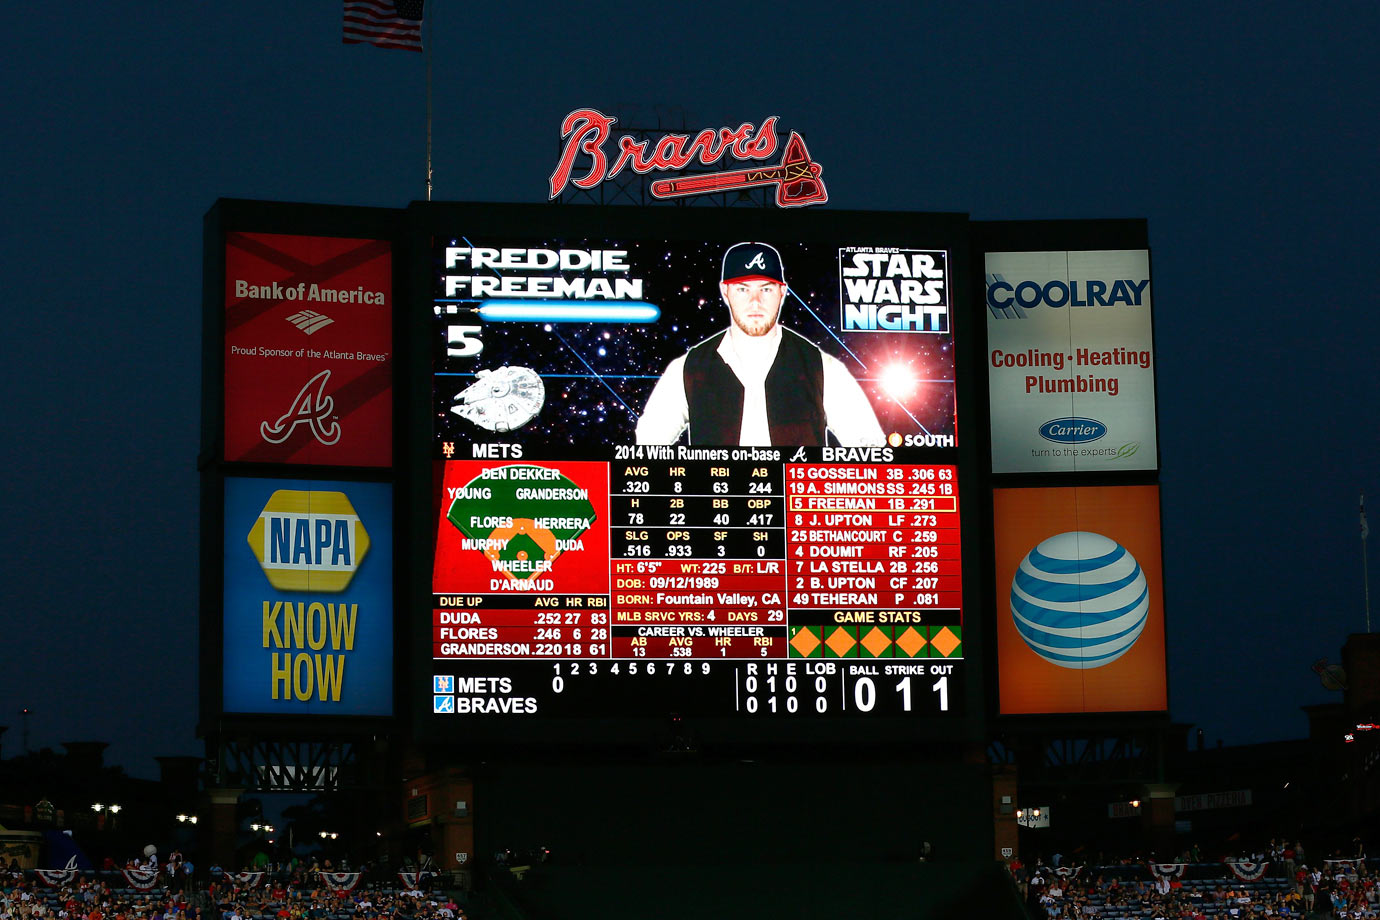 "Atlanta Braves first baseman Freddie Freeman appears dressed as Han Solo on the jumbotron during the Braves game against the New York Mets on ""Star Wars Night"" on Sept. 19, 2014 at Turner Field in Atlanta."